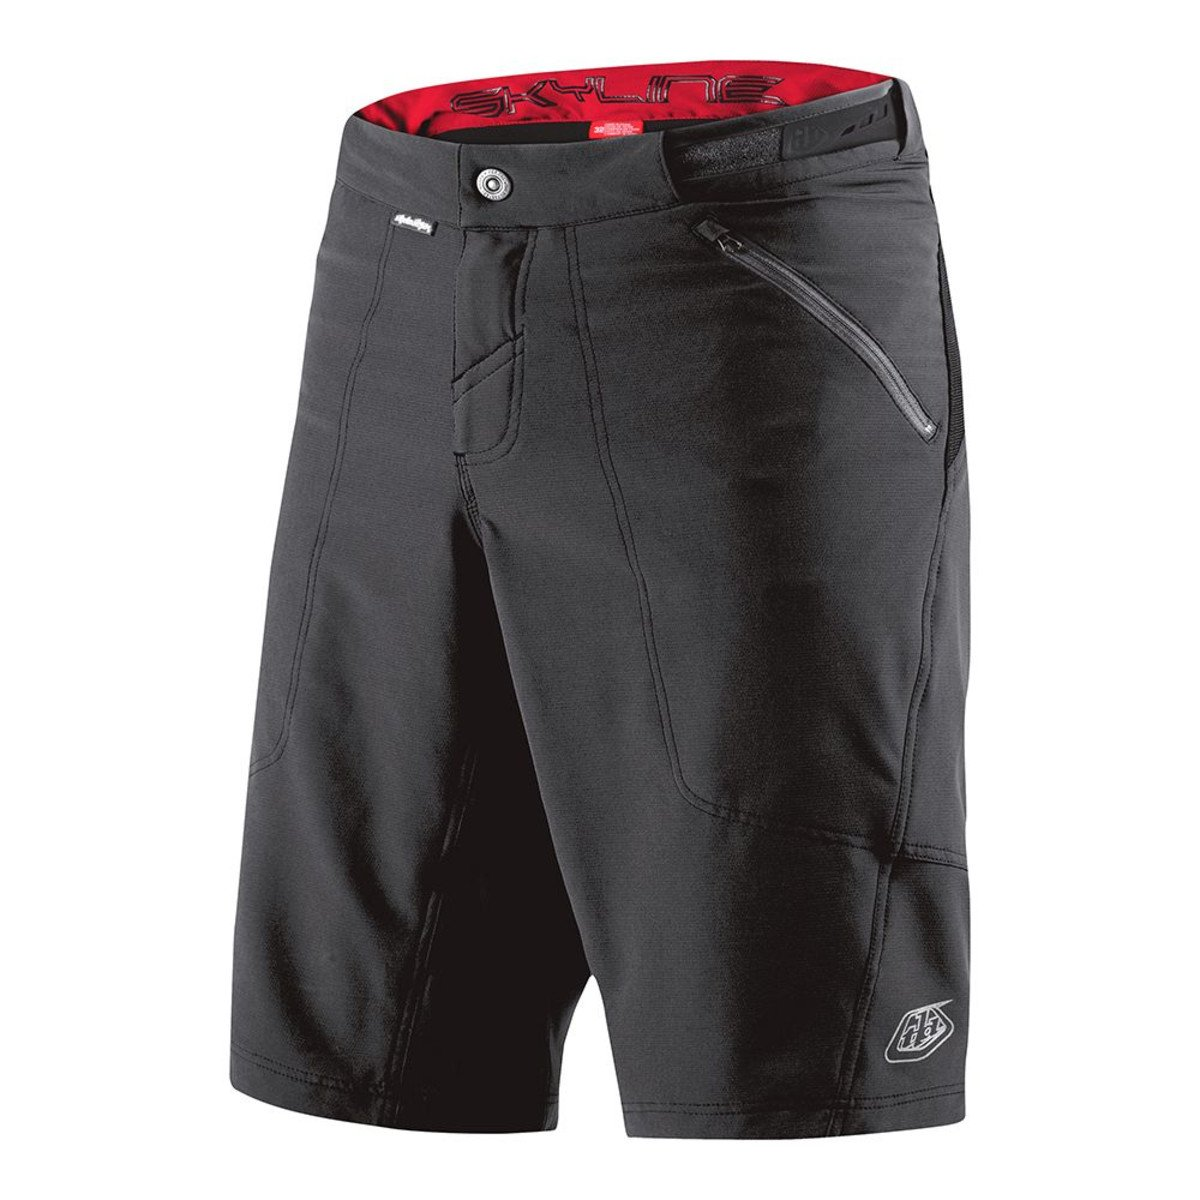 Troy Lee Designs Skyline Shell Men's BMX Bicycle Shorts - Black